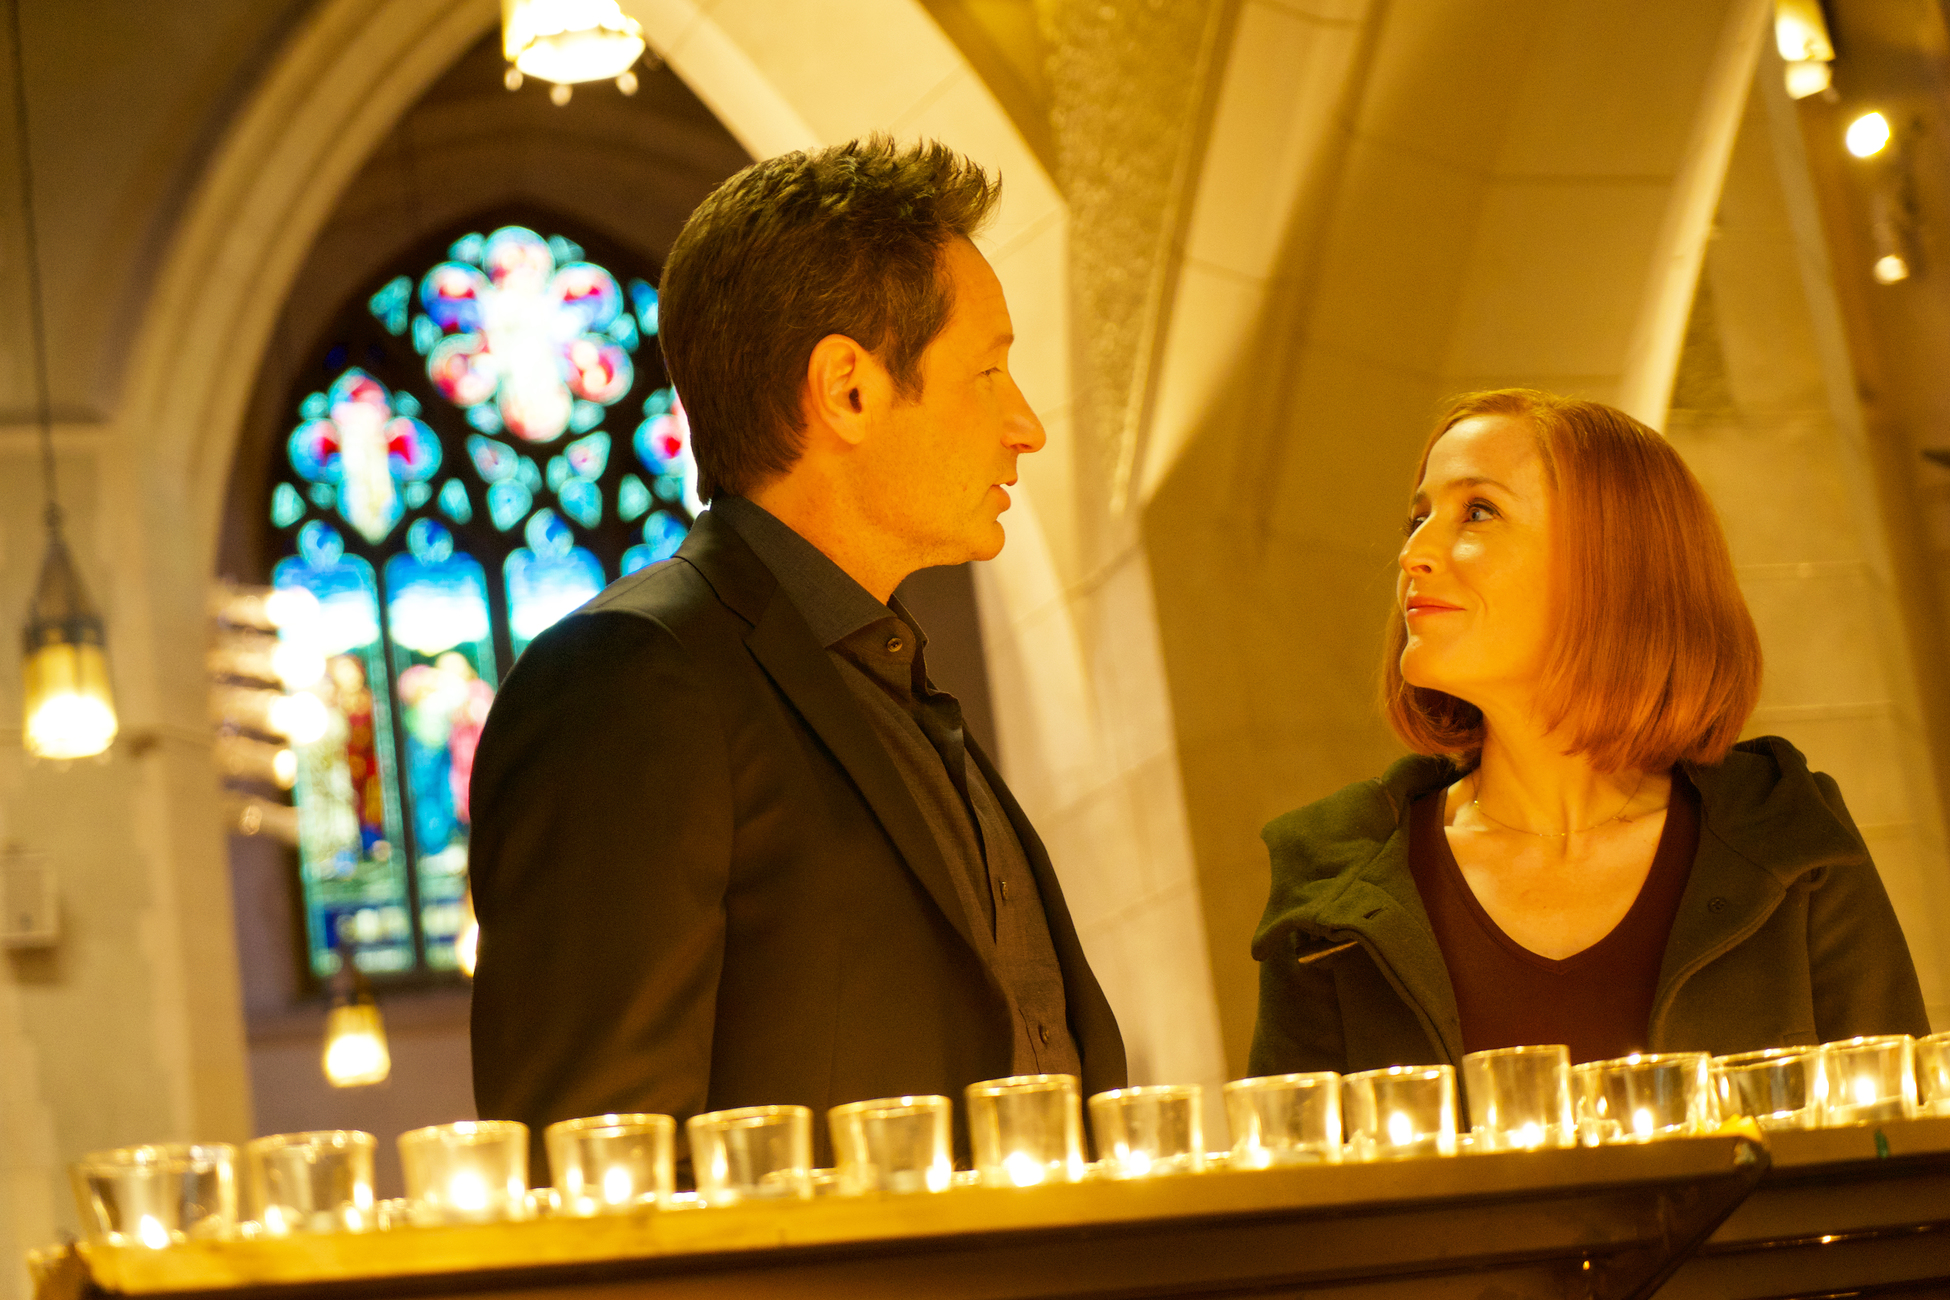 X-Files Season 11 Episode 9 Nothing Lasts Forever Review: So